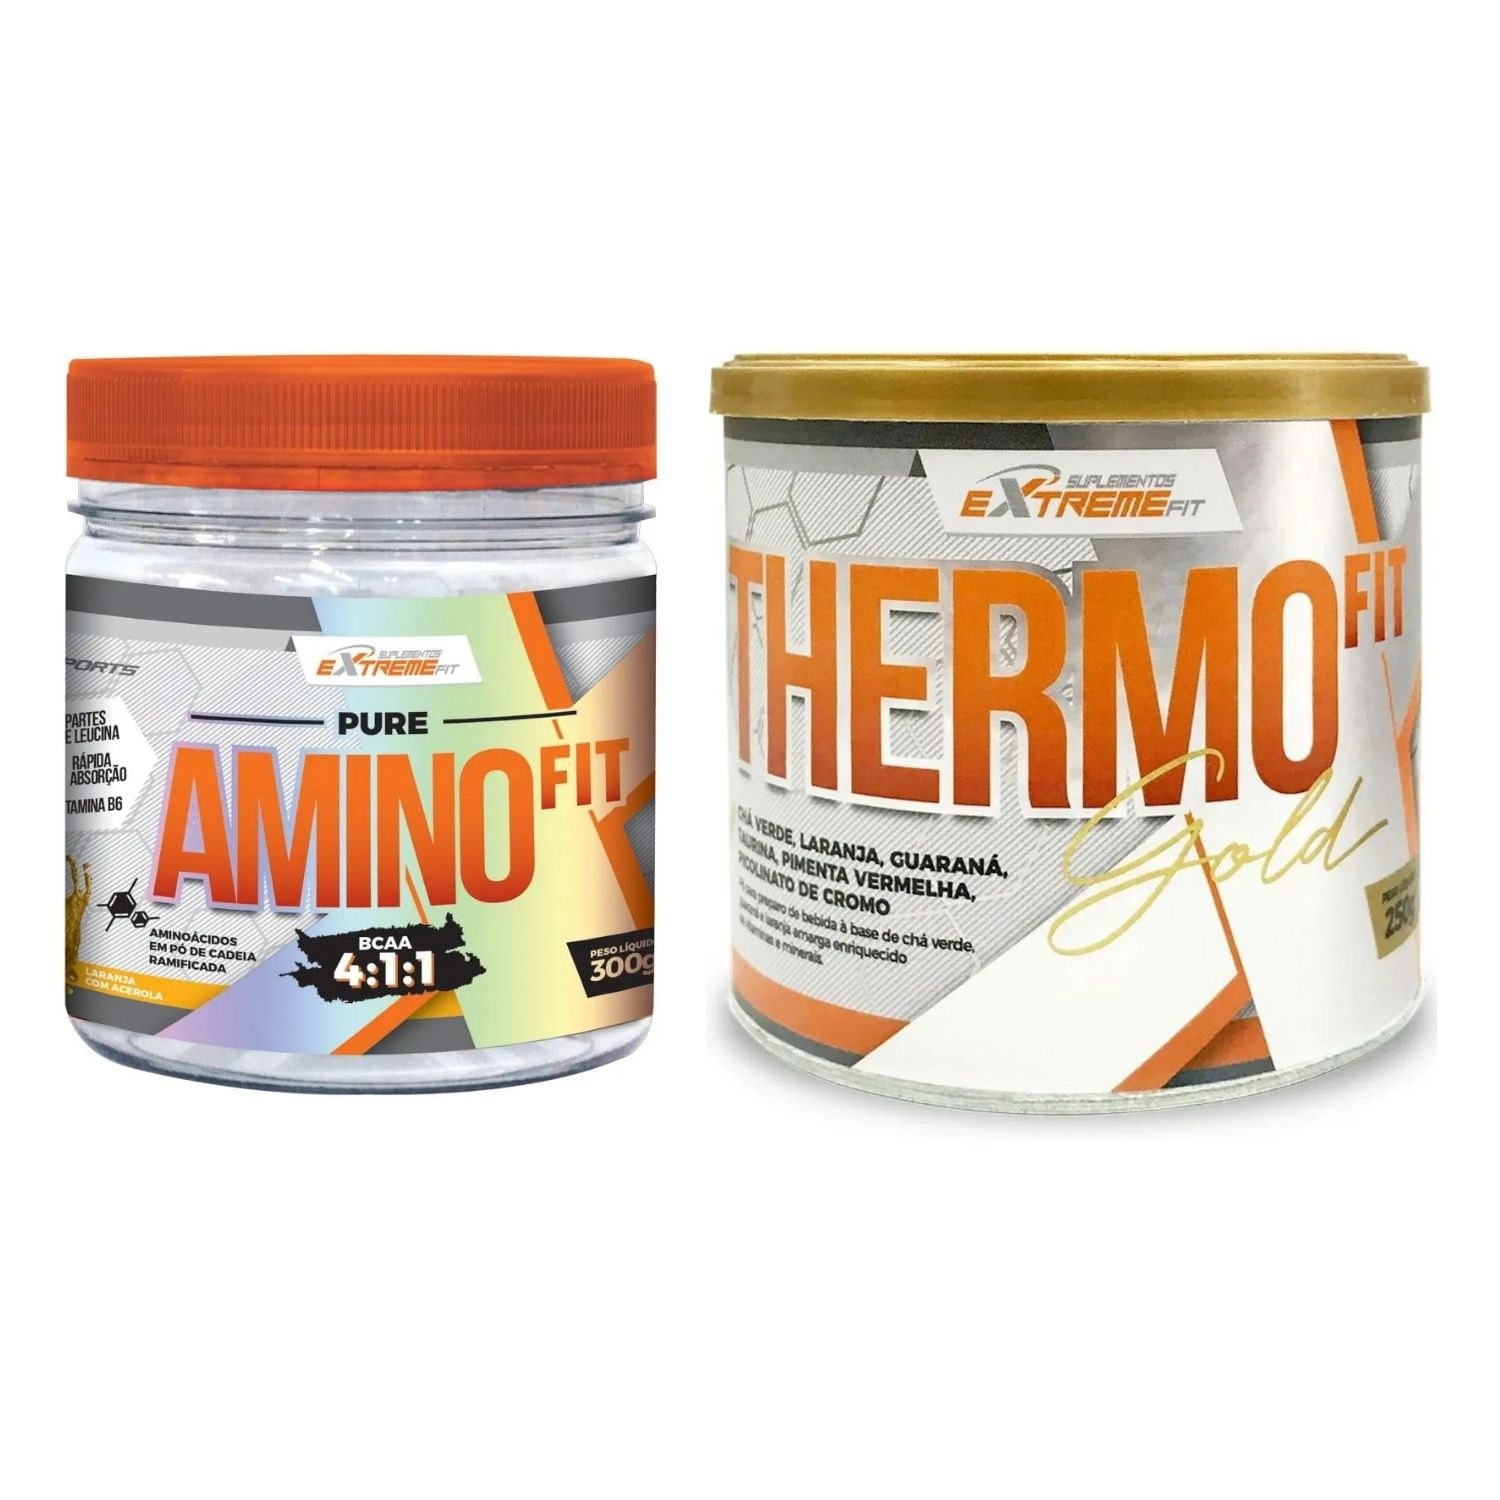 THERMO Fit 250g + Amino Fit BCAA 4:1:1 300g ExtremeFit